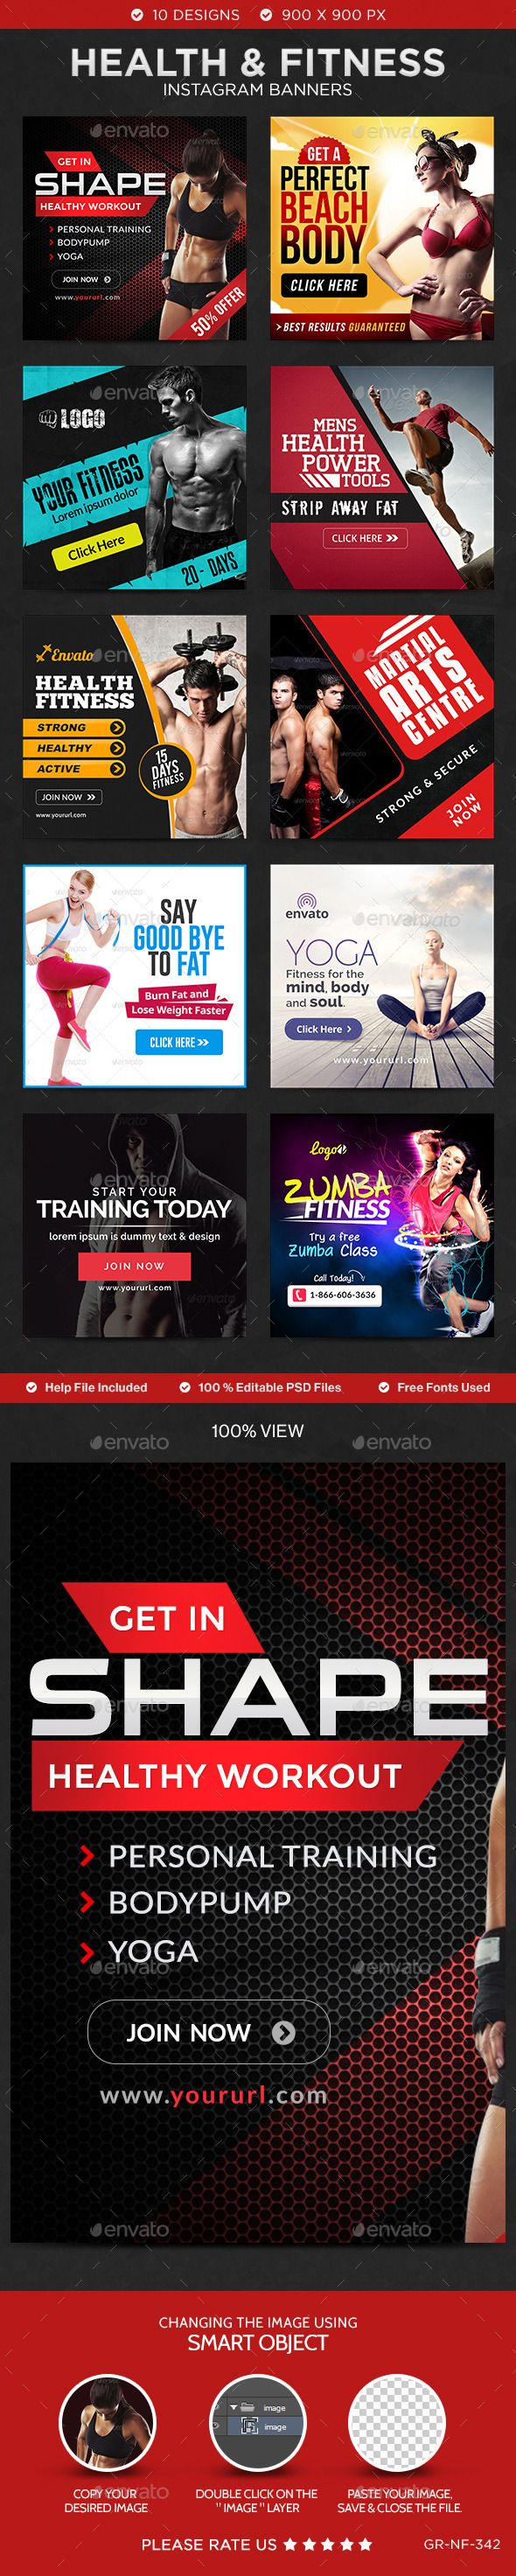 Health & Fitness Instagram Templates - 10 Designs. download: http://graphicriver.net/item/health-fitness-instagram-templates-10-designs/11275859?ref=ksioks